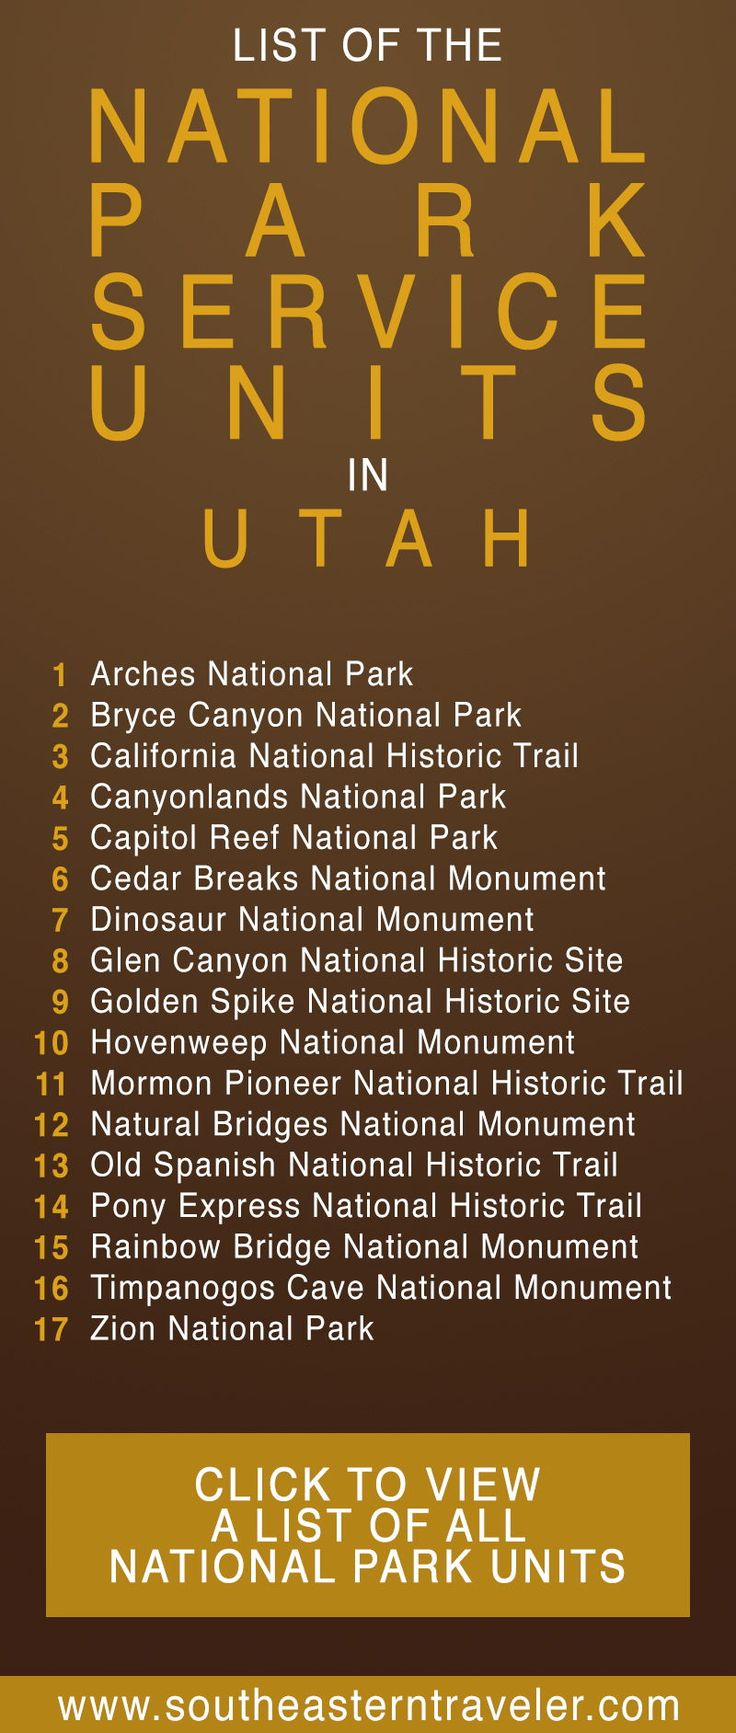 The Complete List of all National Park Units (and the Ones I've Visited) in the U.S